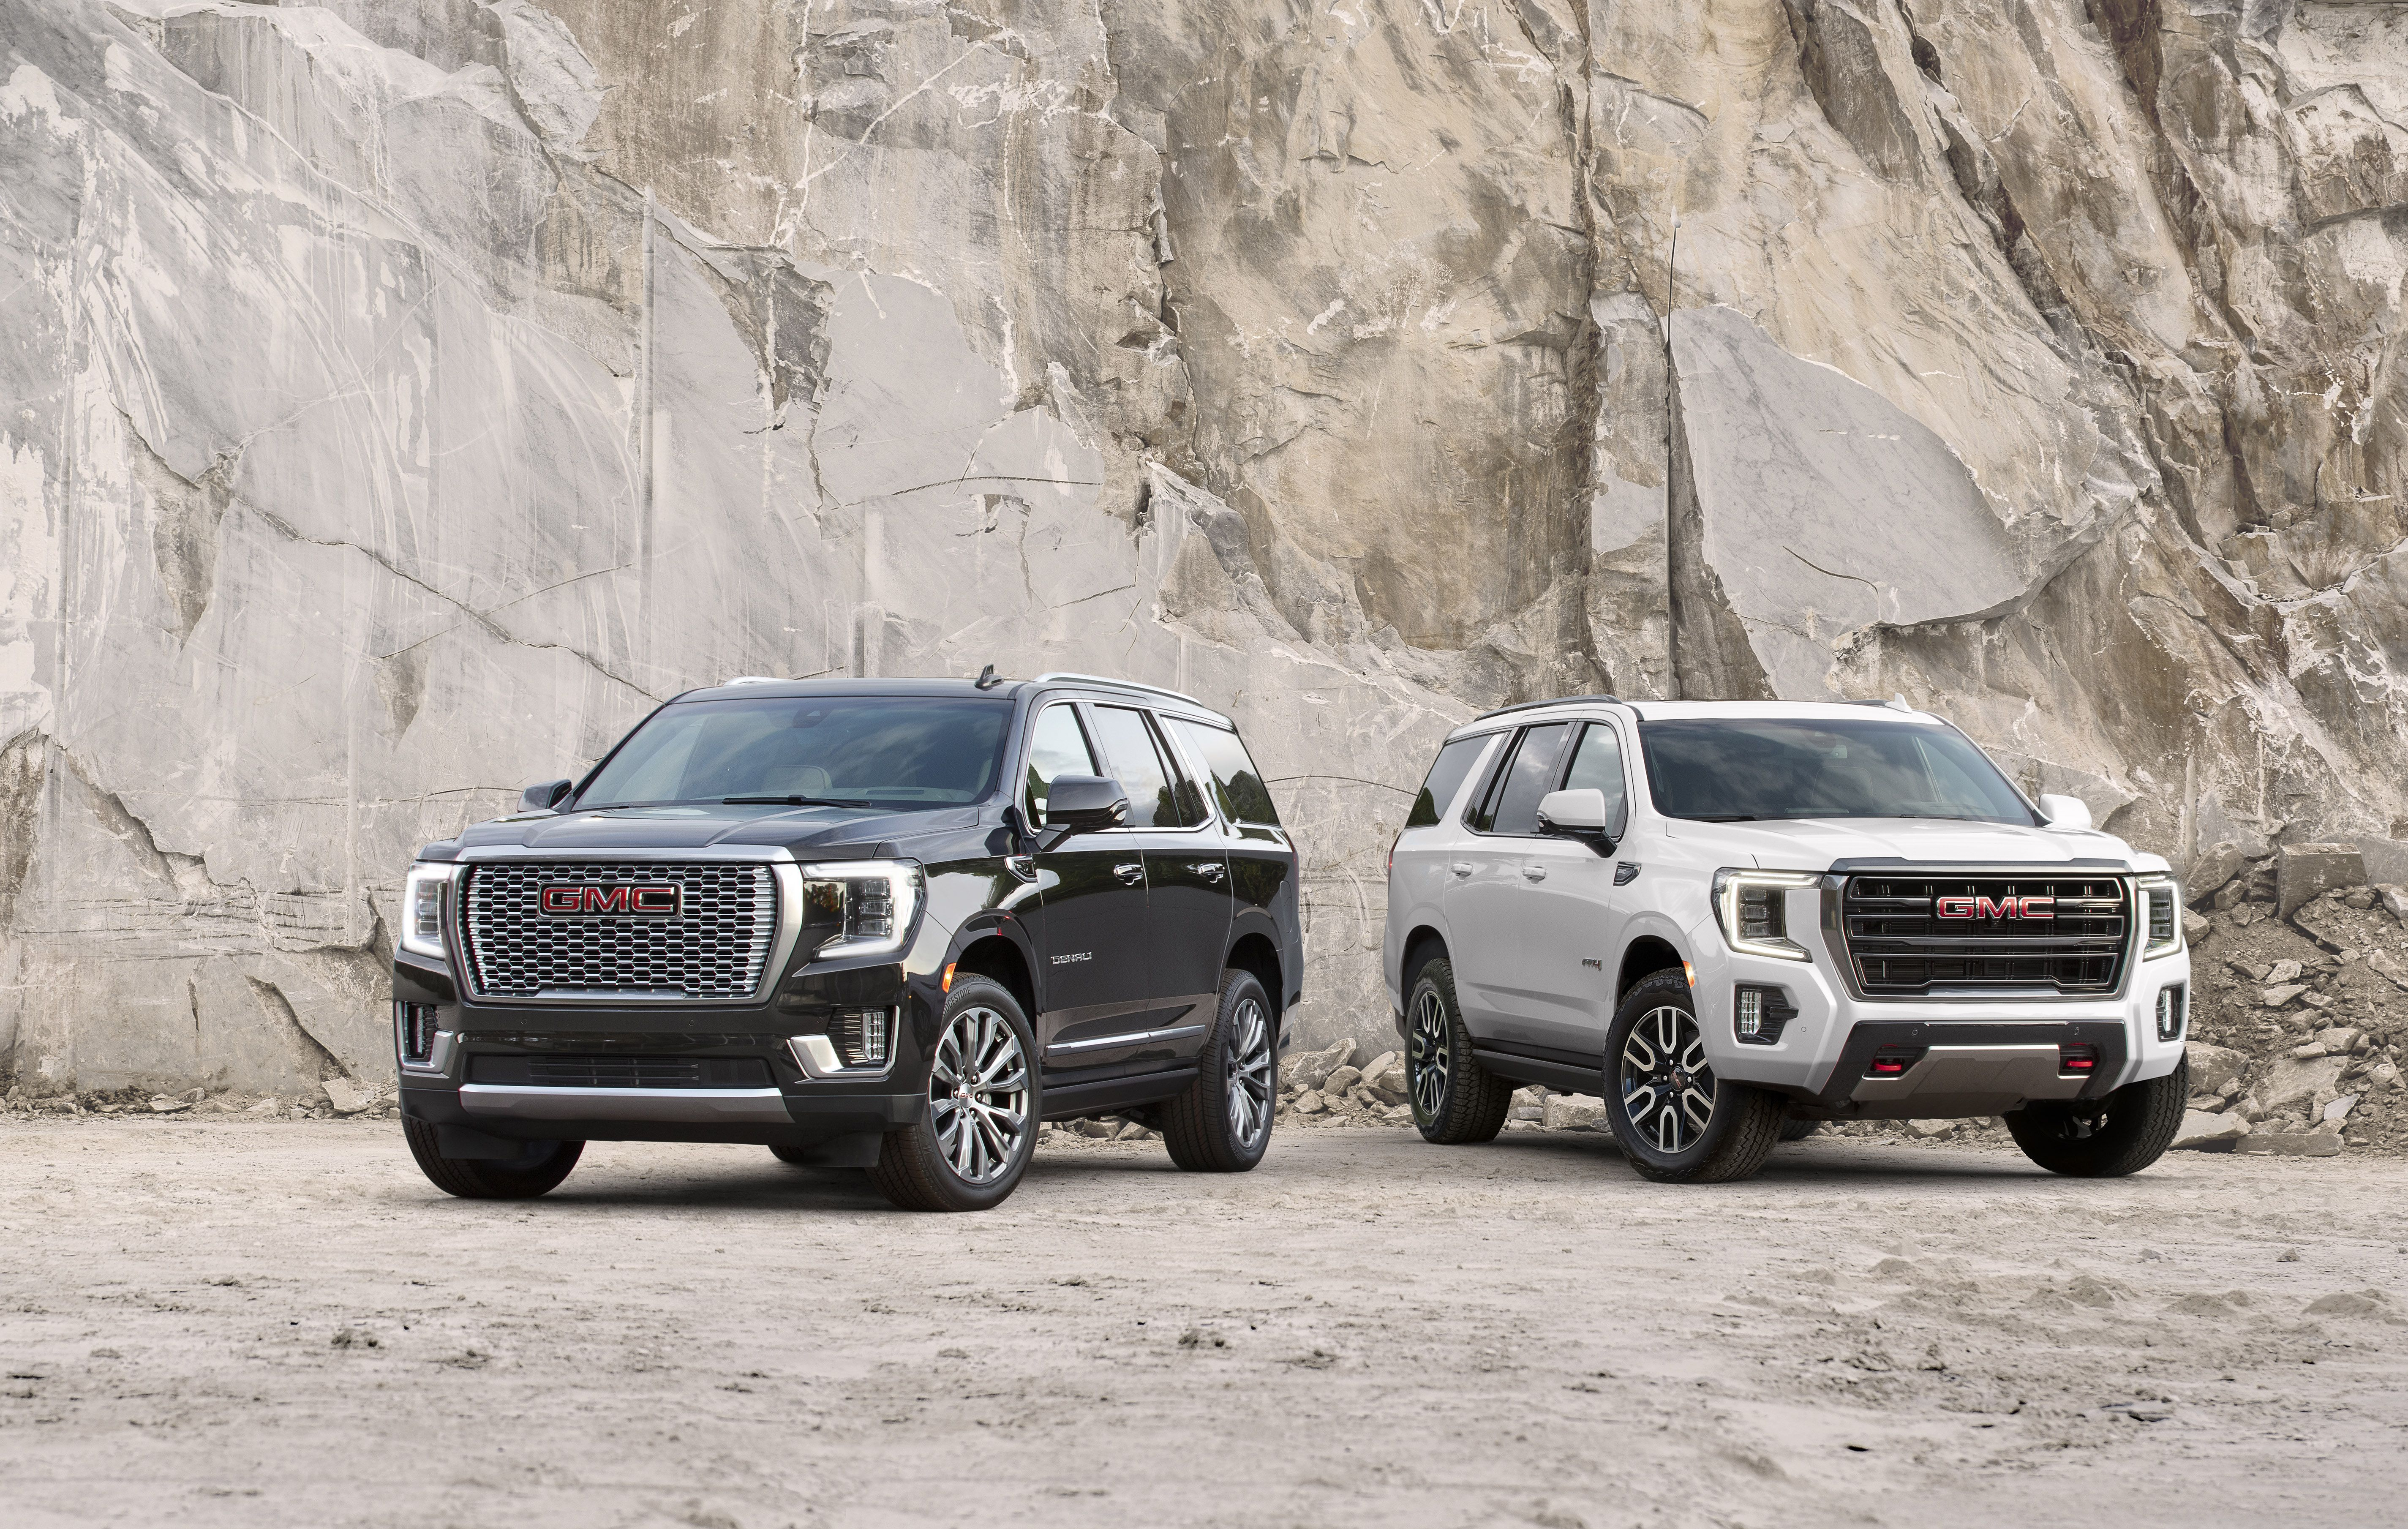 2021 Gmc Yukon Gets New Features Diesel At4 Off Road A Nicer Denali In 2020 Gmc Yukon Gmc Yukon Denali Gmc